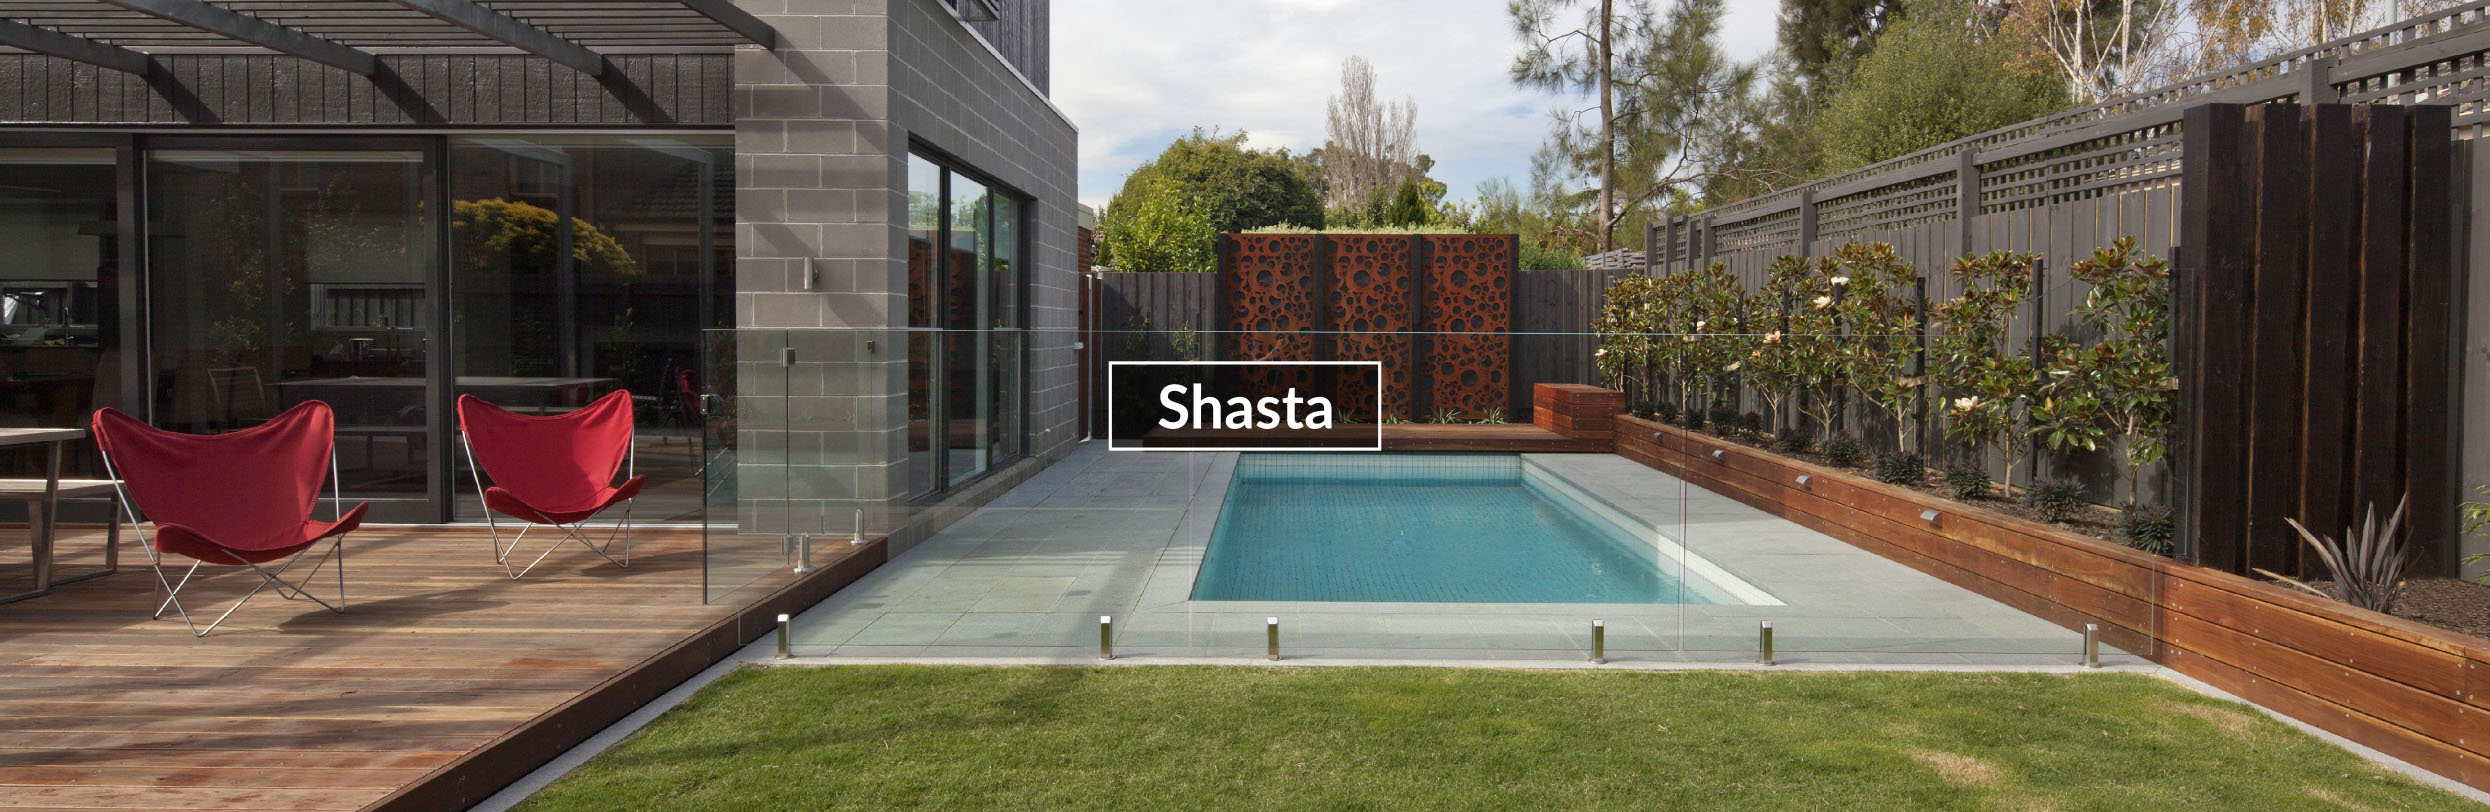 Shasta - Kiama Pools Inground Pool Project